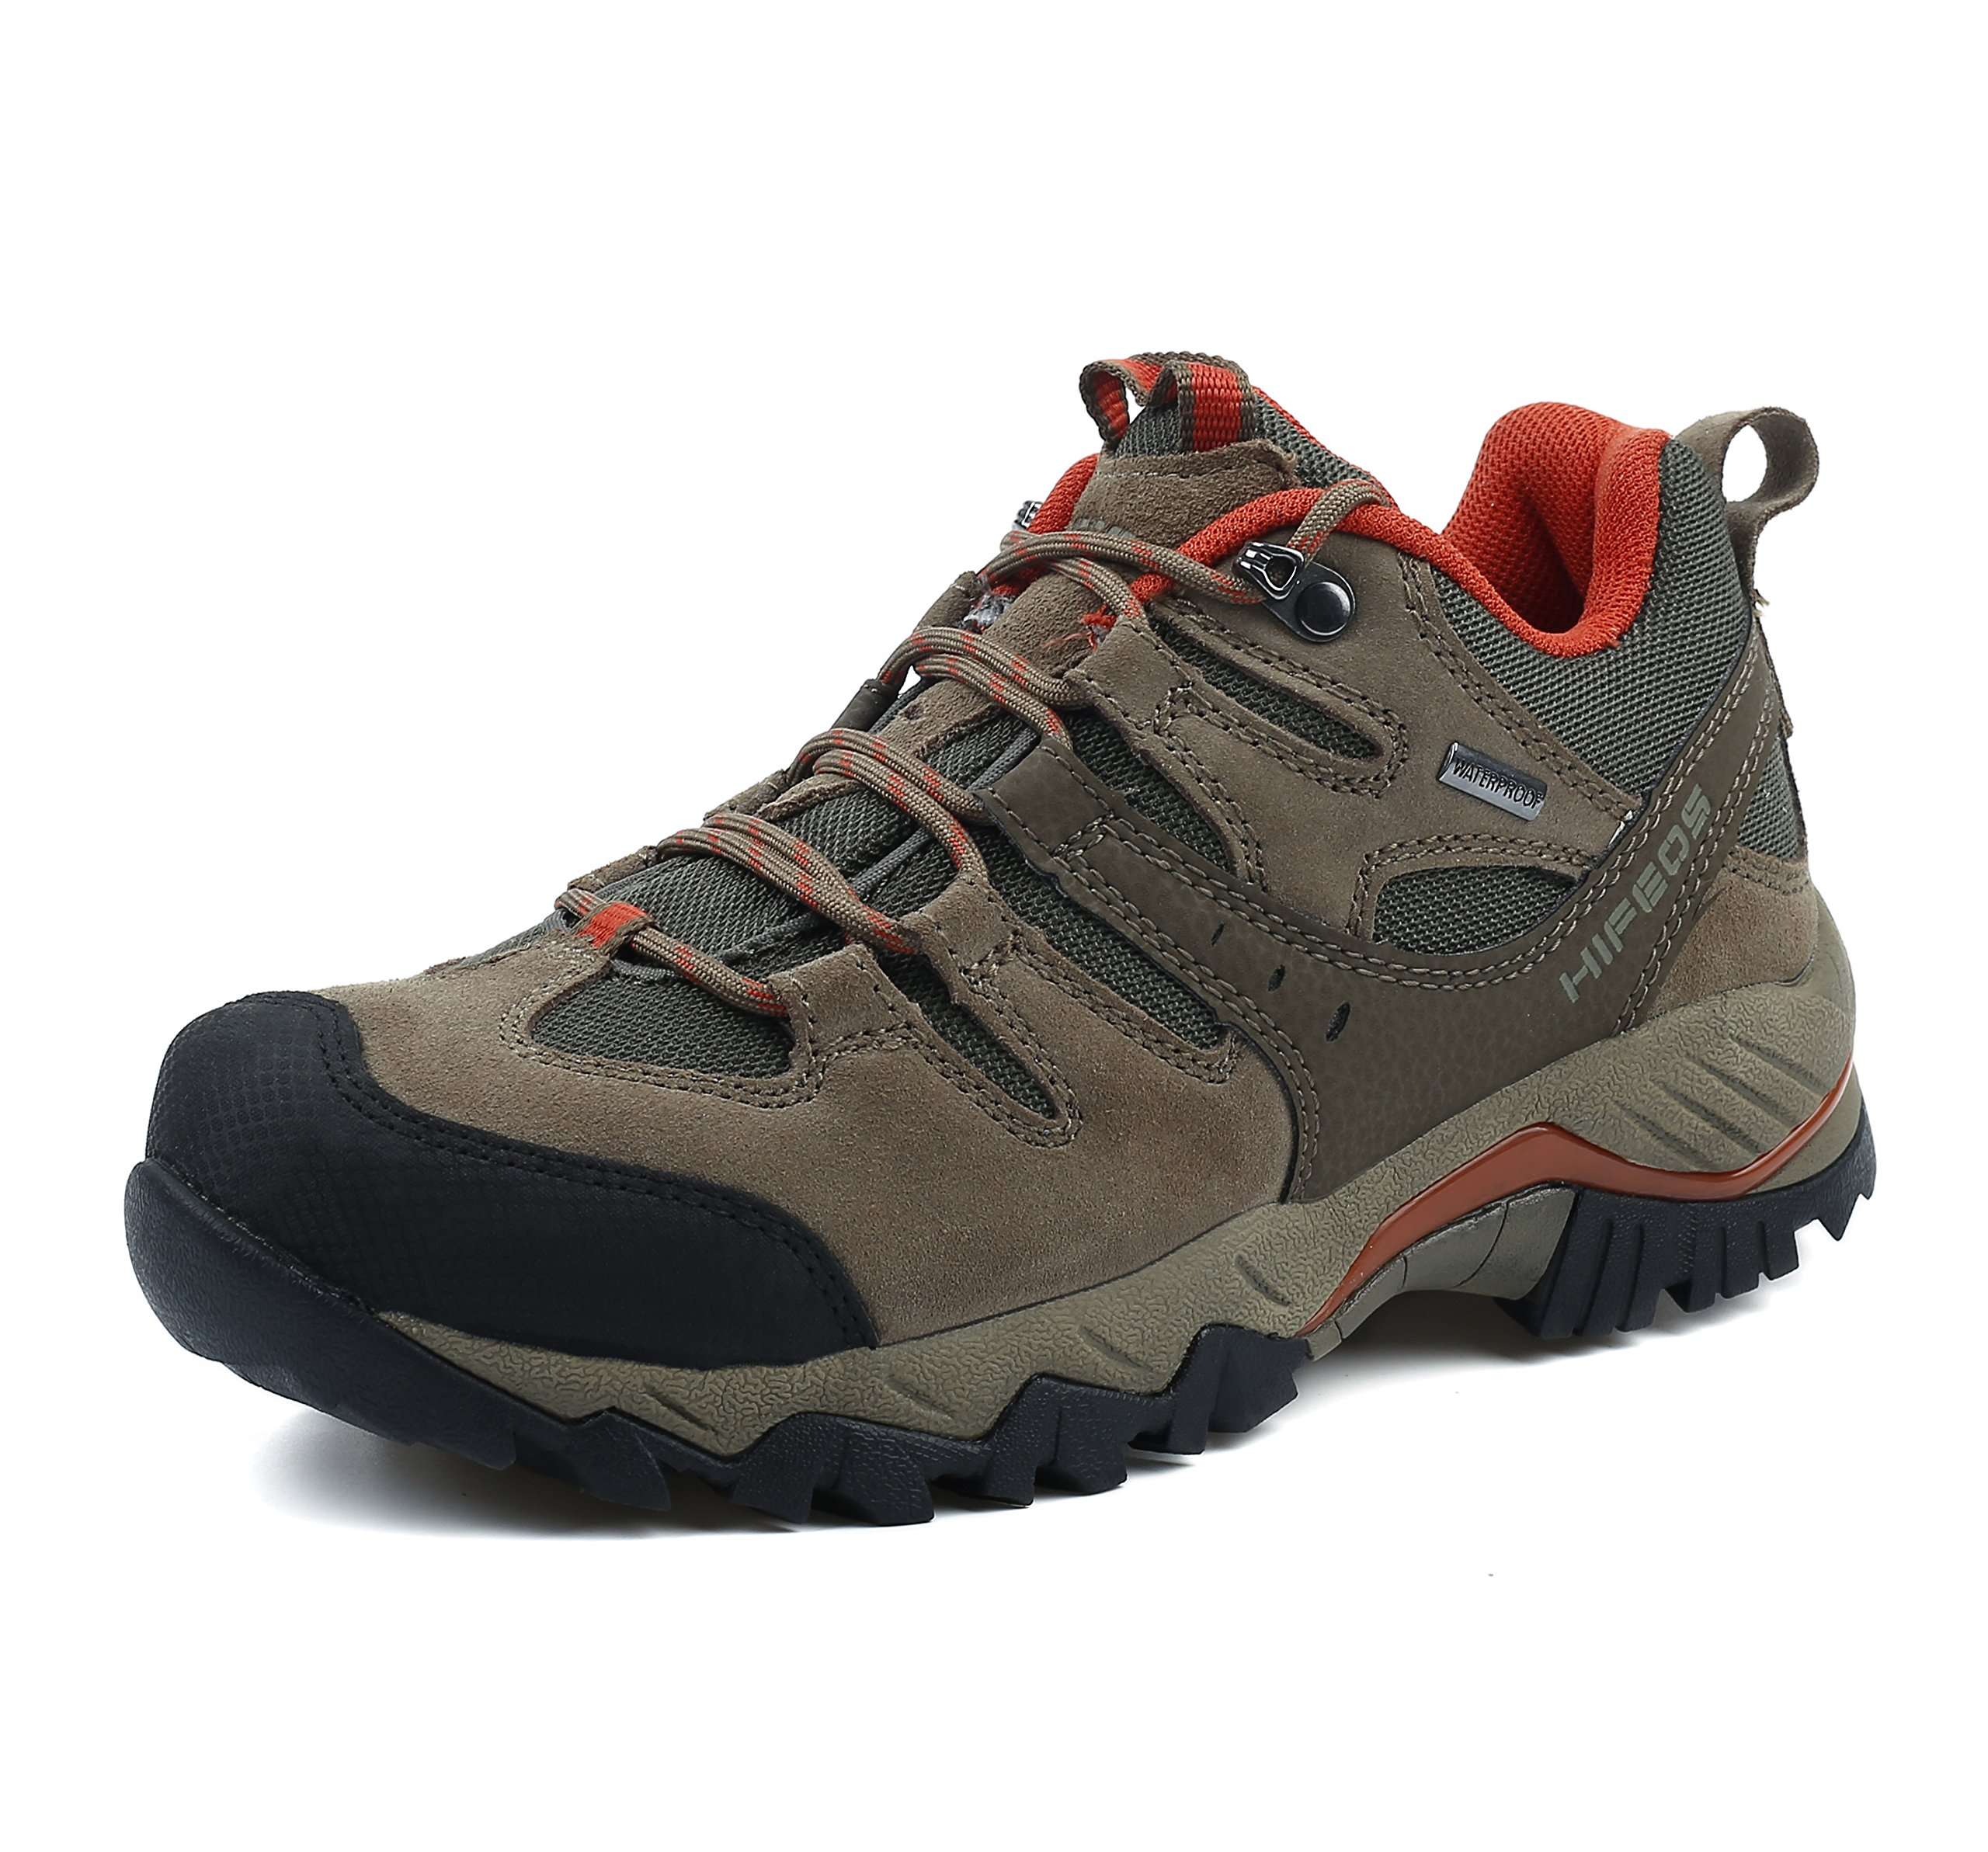 HIFEOS Hiking Boots Leather Trekking Shoes Outdoor Waterproof Backpacking Shoes by HIFEOS